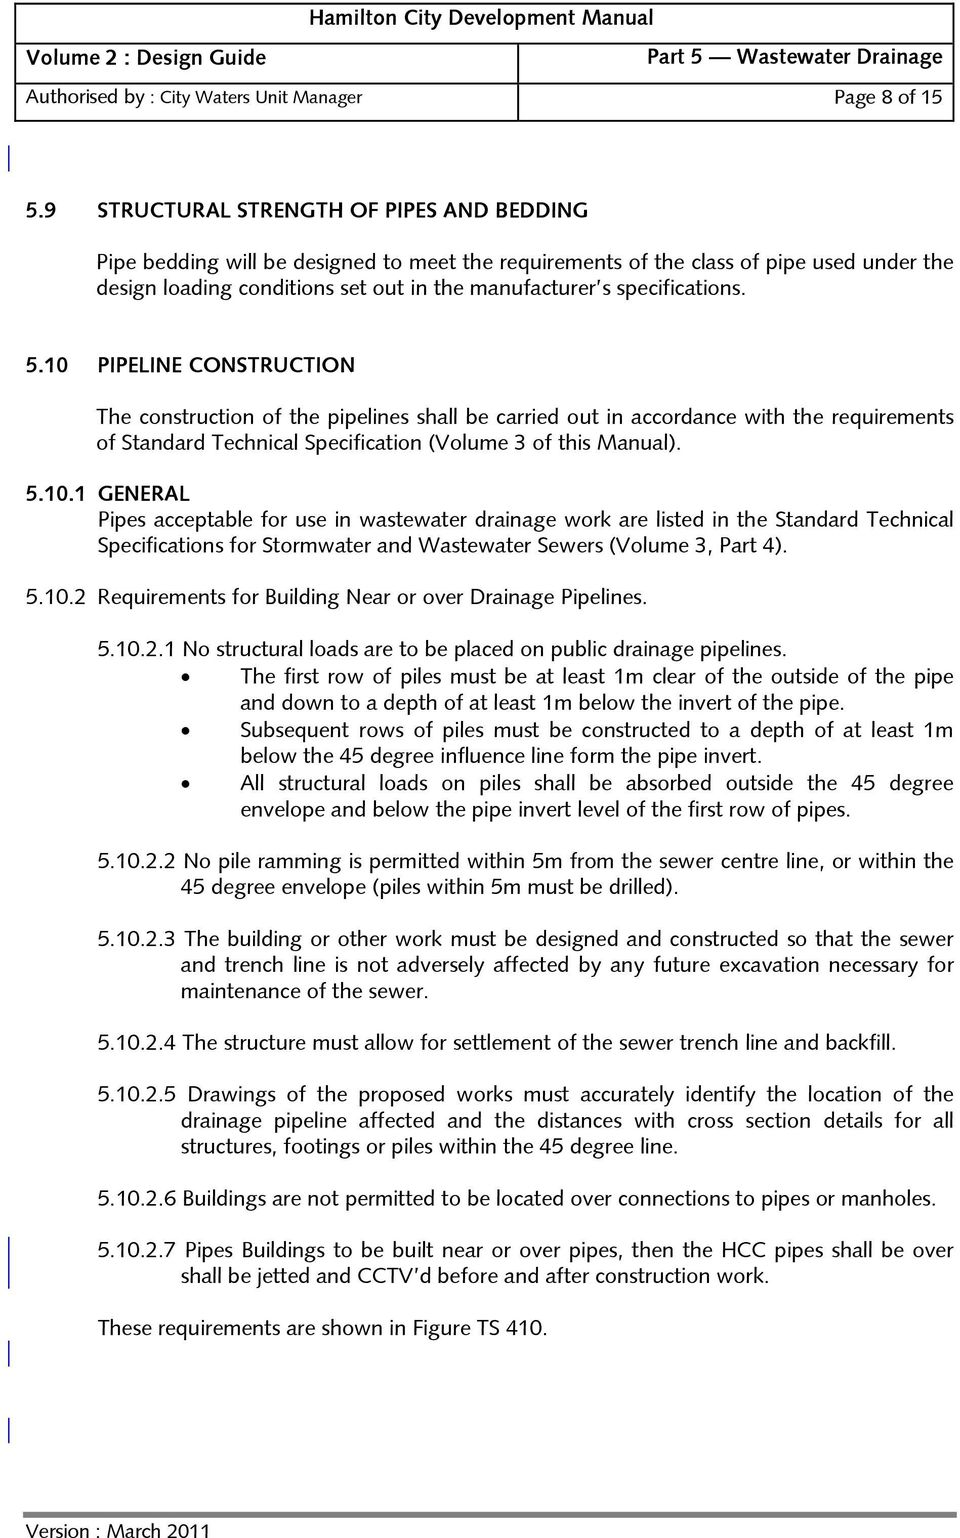 specifications. 5.10 PIPELINE CONSTRUCTION The construction of the pipelines shall be carried out in accordance with the requirements of Standard Technical Specification (Volume 3 of this Manual). 5.10.1 GENERAL Pipes acceptable for use in wastewater drainage work are listed in the Standard Technical Specifications for Stormwater and Wastewater Sewers (Volume 3, Part 4).